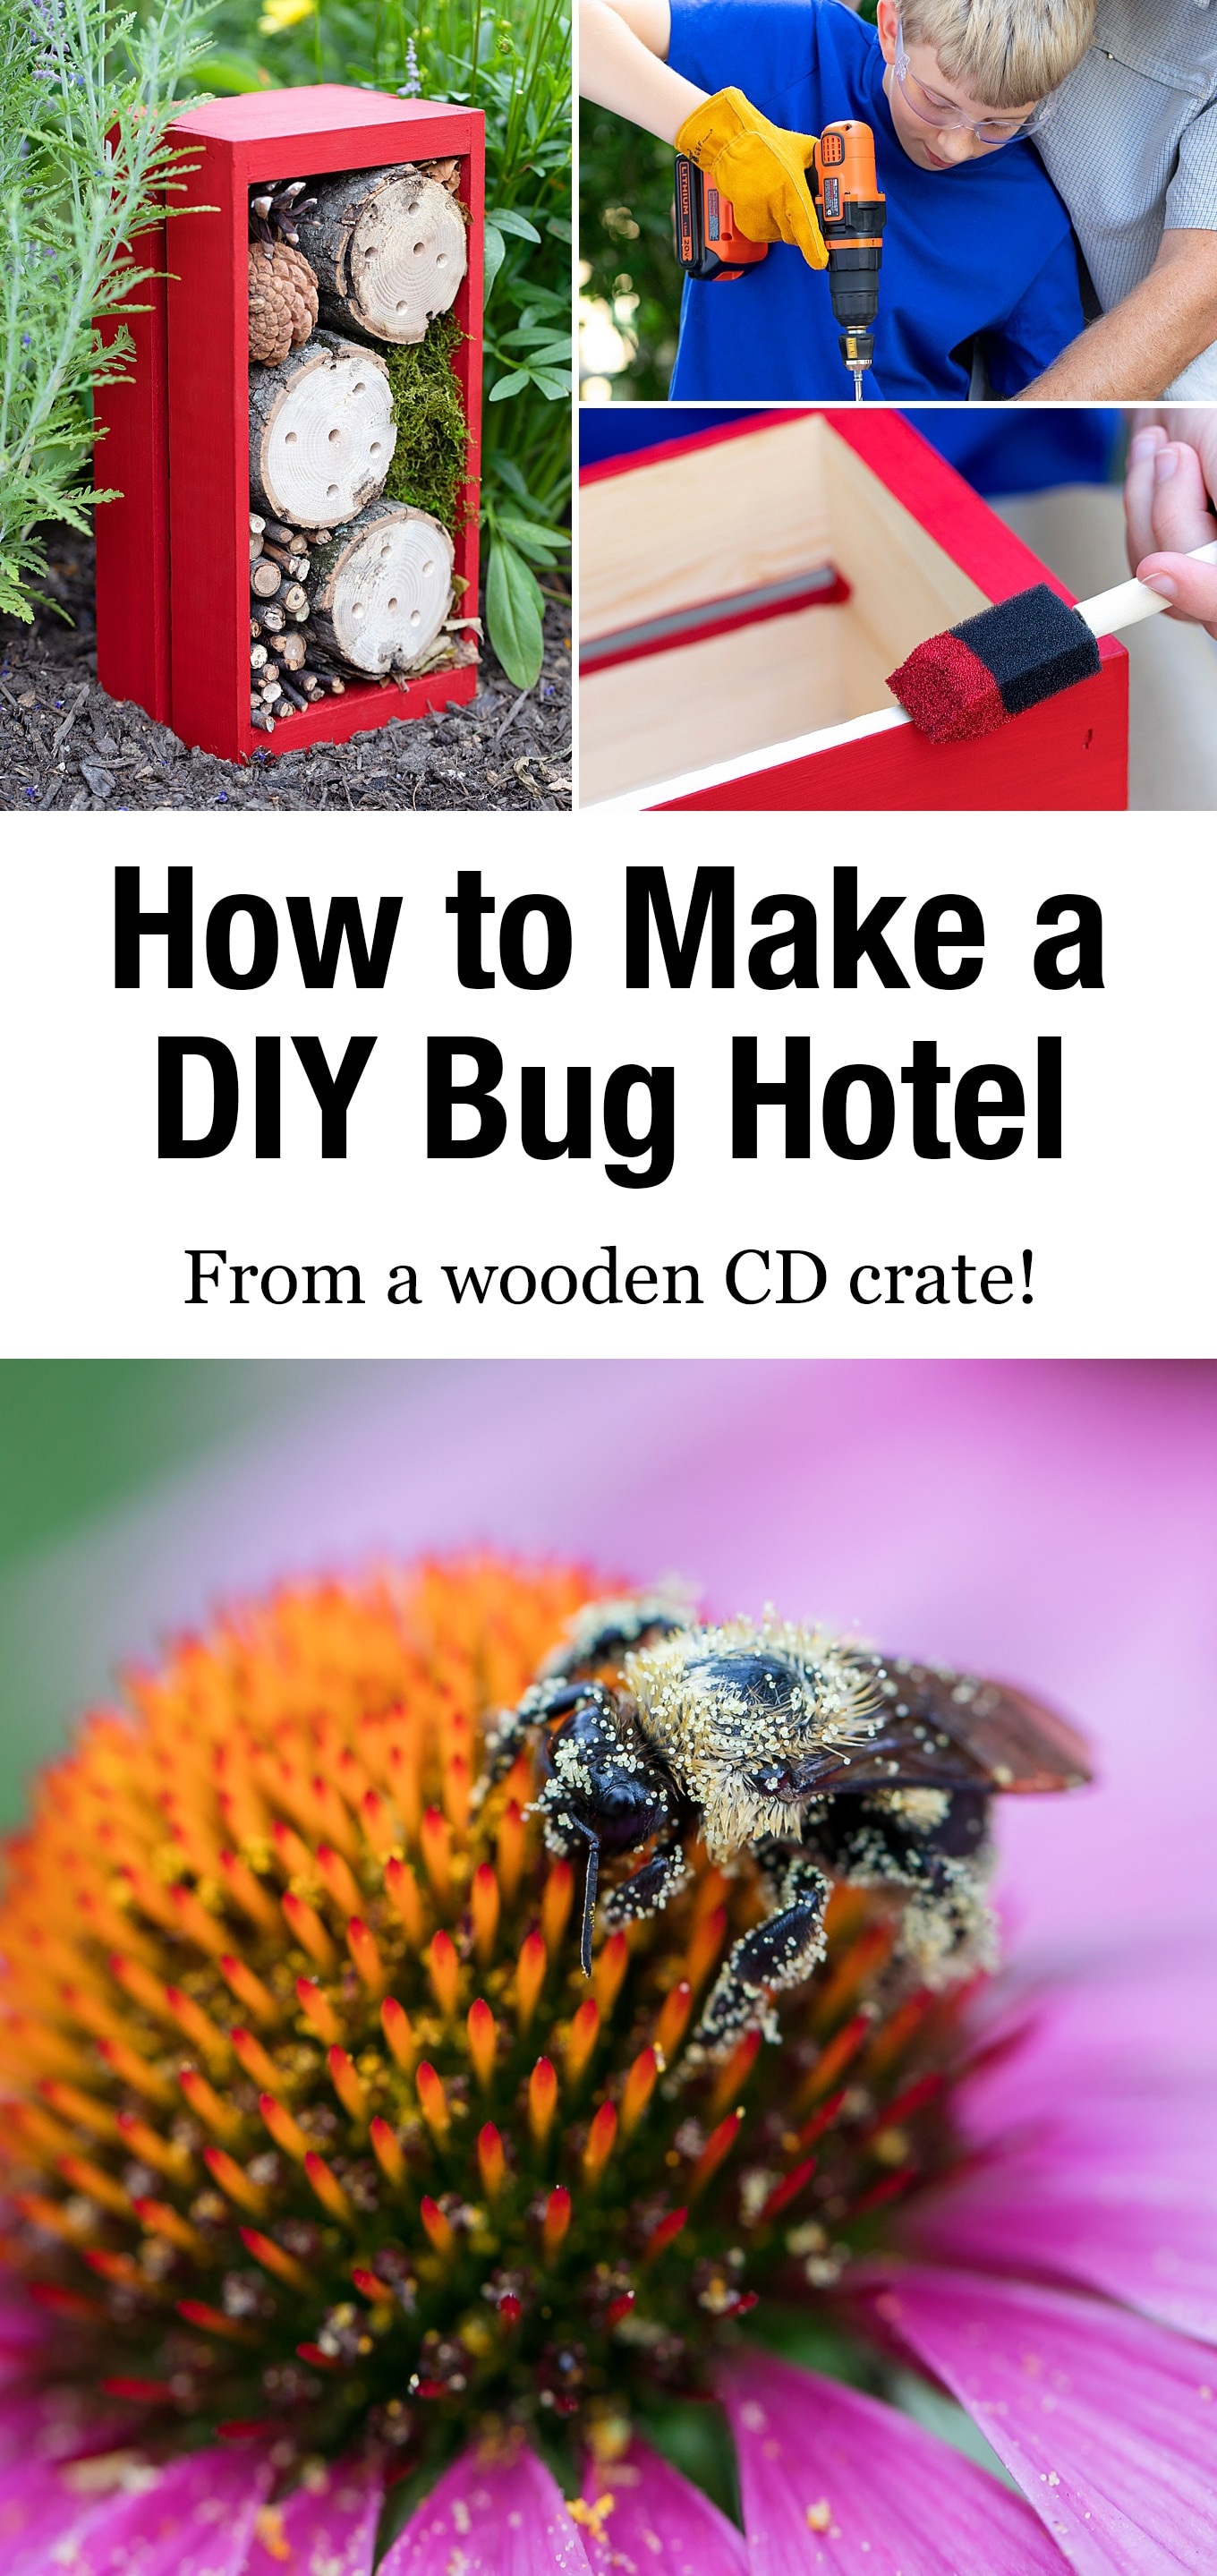 Learn how to make an easy DIY bug hotel with a wooden CD crate, logs, and other natural materials such as pine cones, sticks, moss, and leaves. This simple insect home is the perfect summer craft for kids! #bughotel #bughouse #insecthouse via @firefliesandmudpies